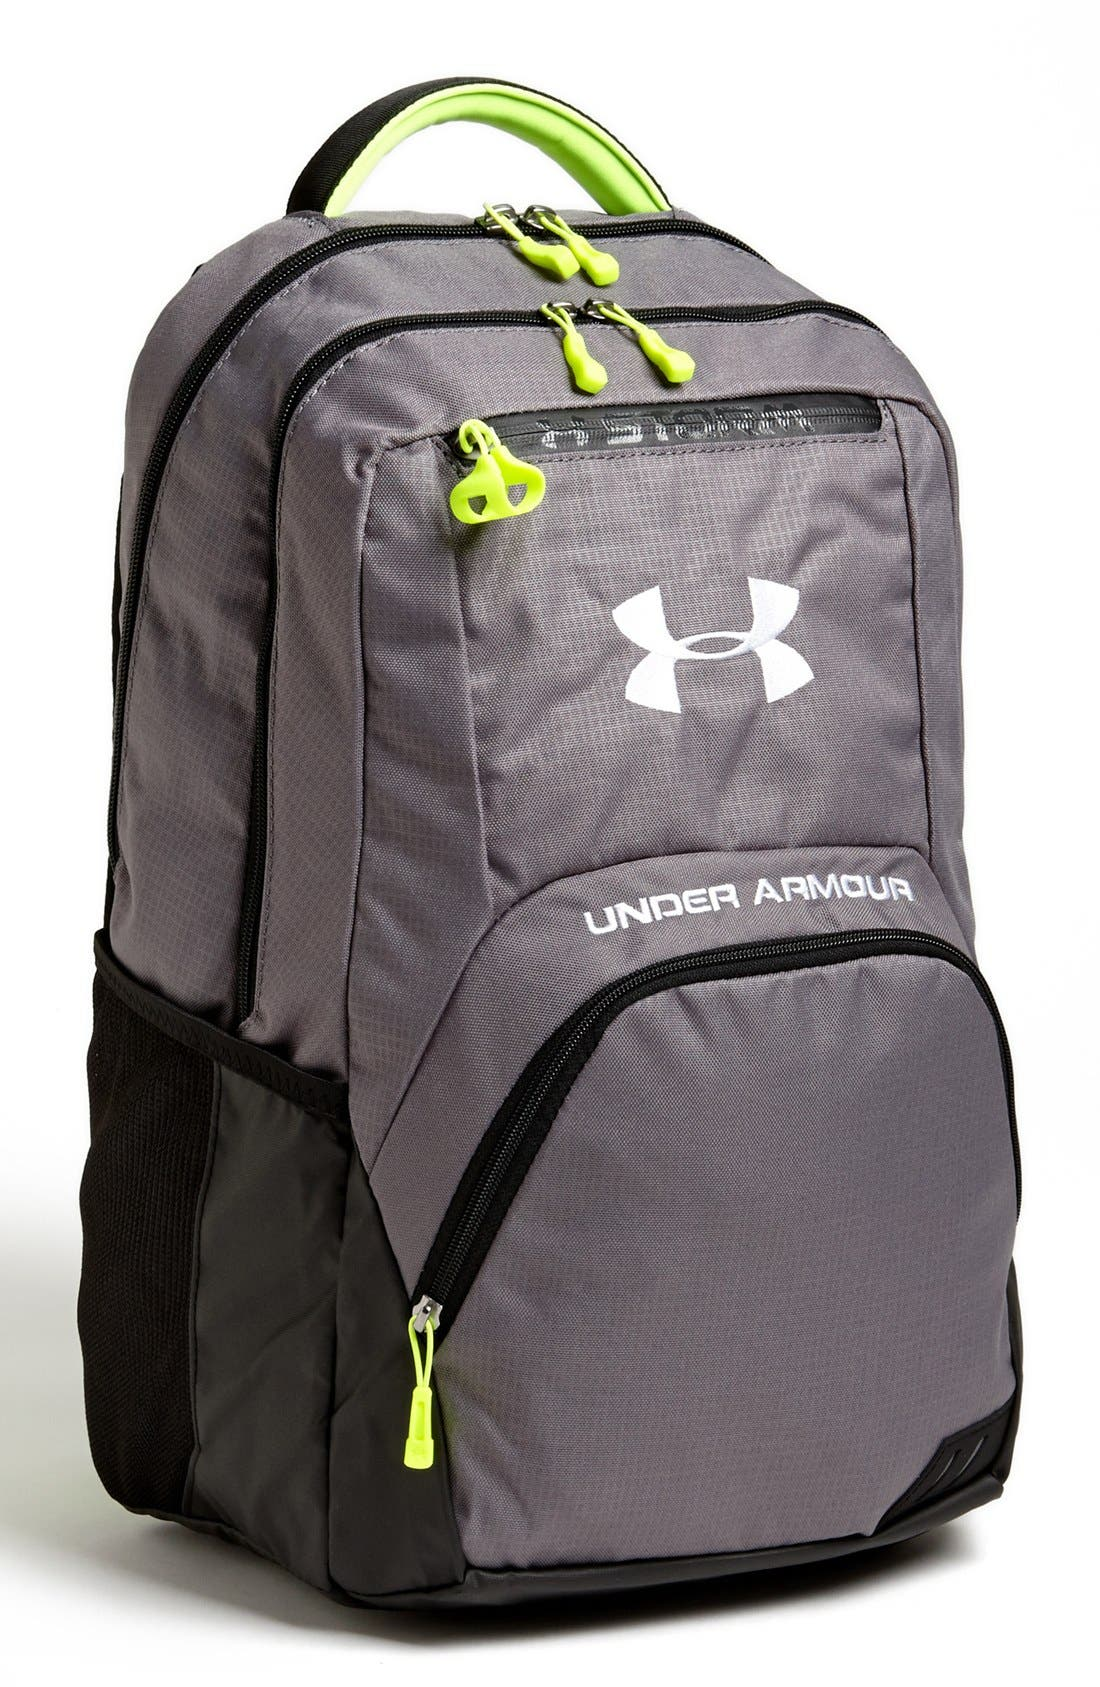 Alternate Image 1 Selected - Under Armour 'Exeter' Backpack